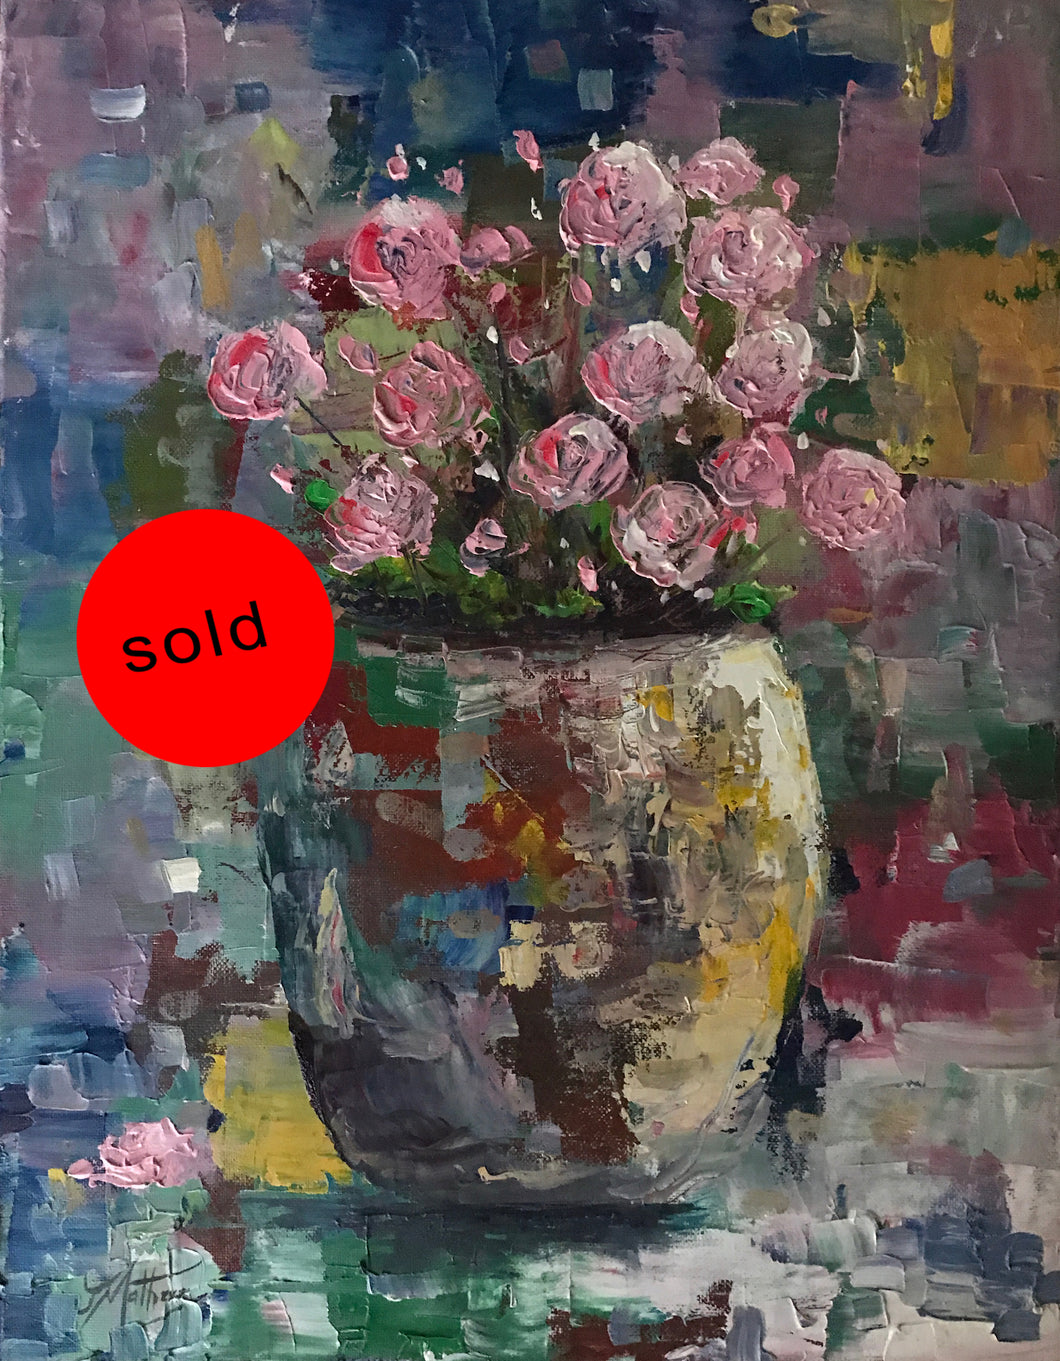 pinks forgotten  |  35x45cm  |  original oil painting SOLD